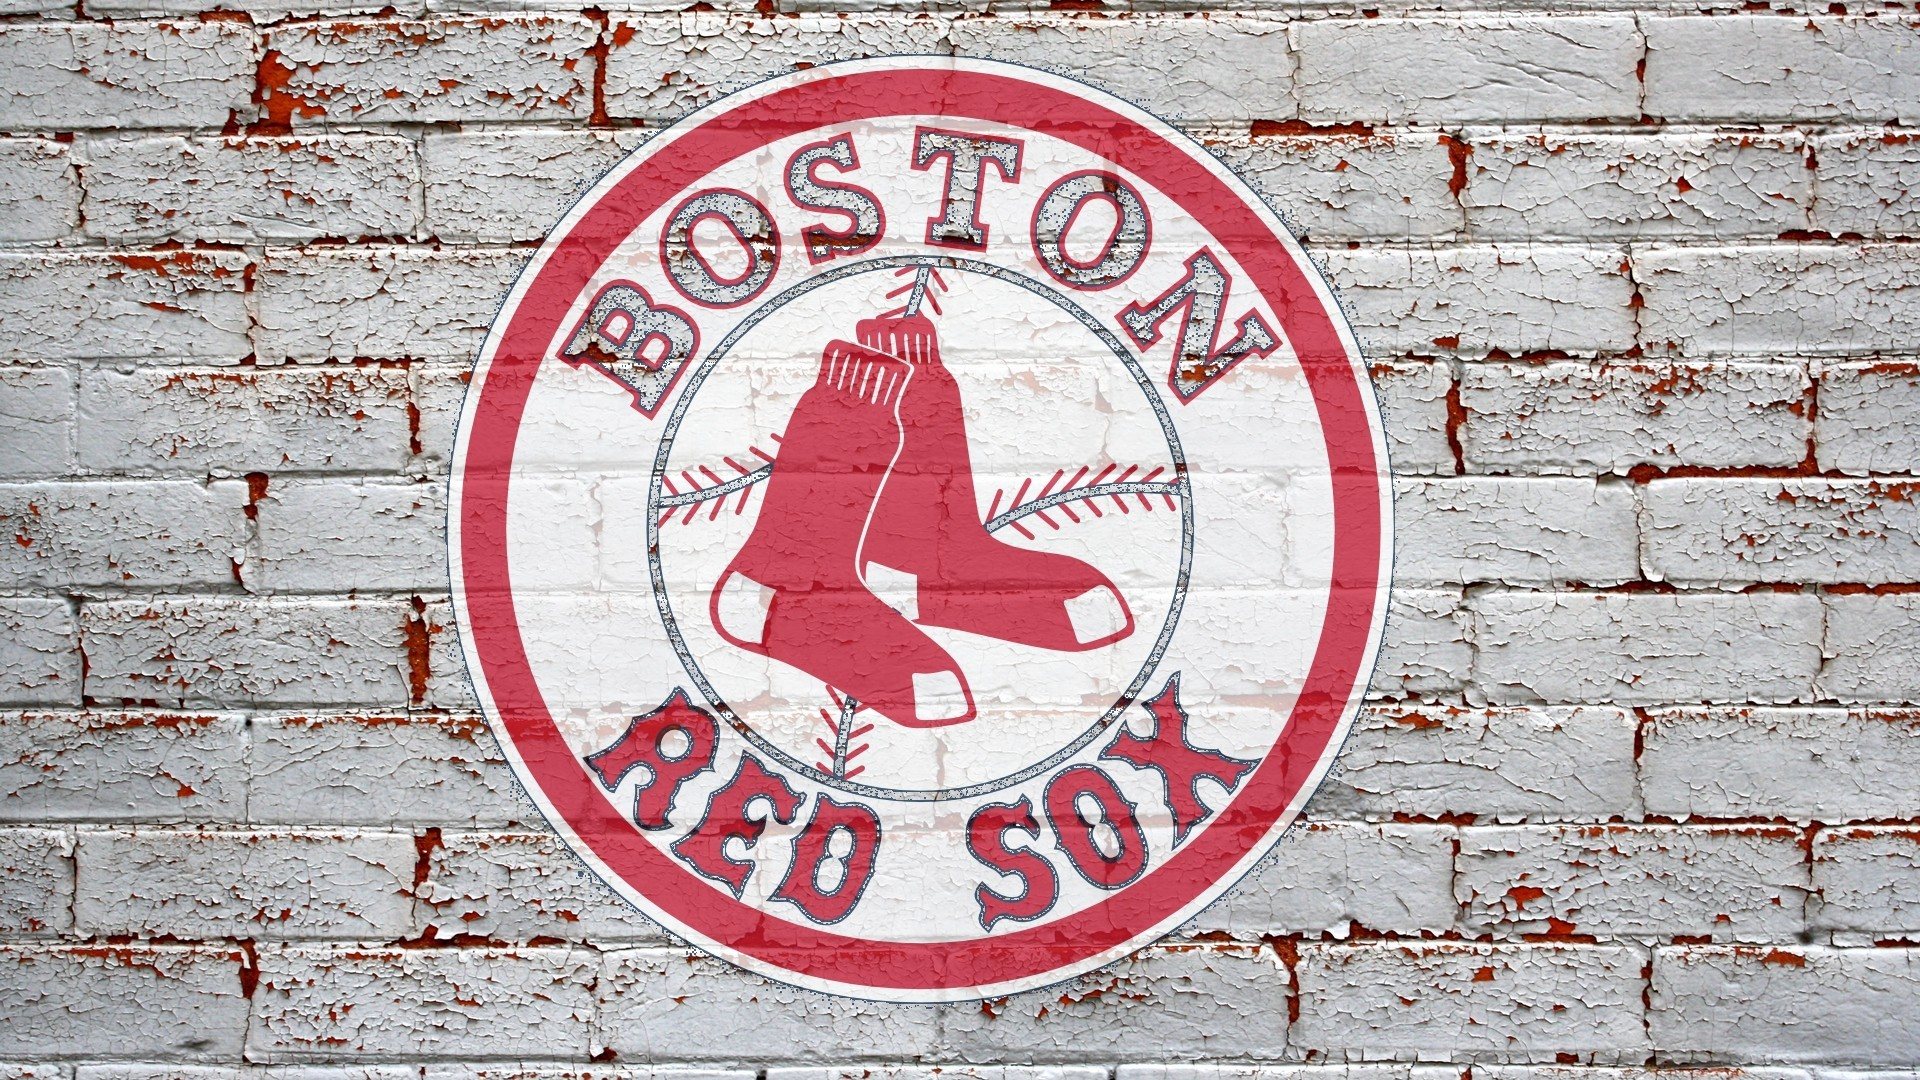 1920x1080 Boston Red Sox Wallpaper 36101 Images | Largepicts.com